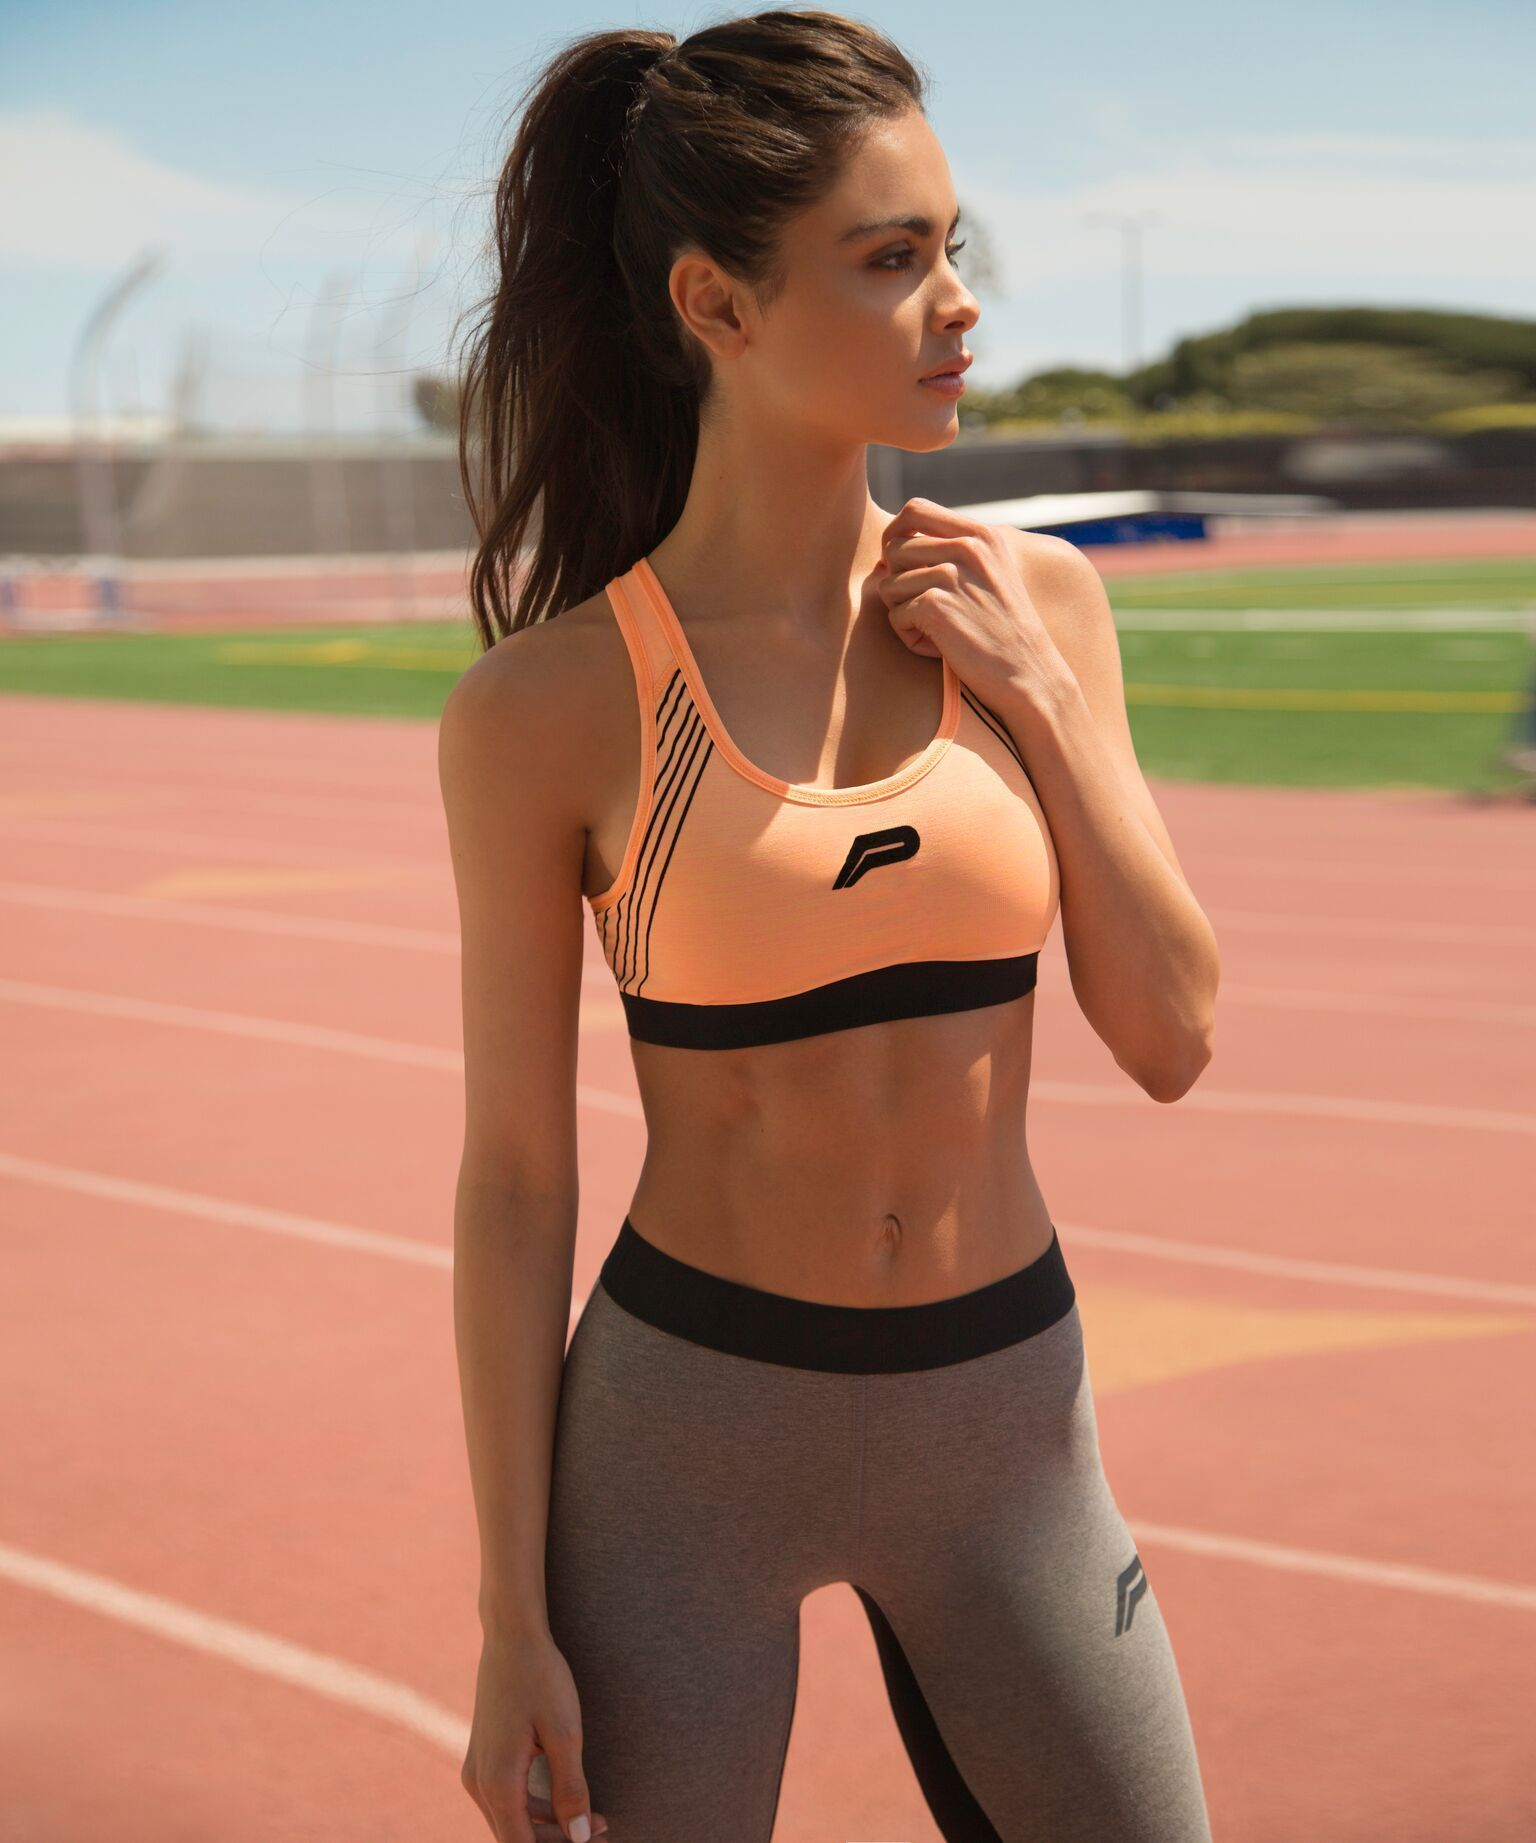 d9c7992c78 Sophia Miacova in the Pursue Fitness sports bra and leggings ...